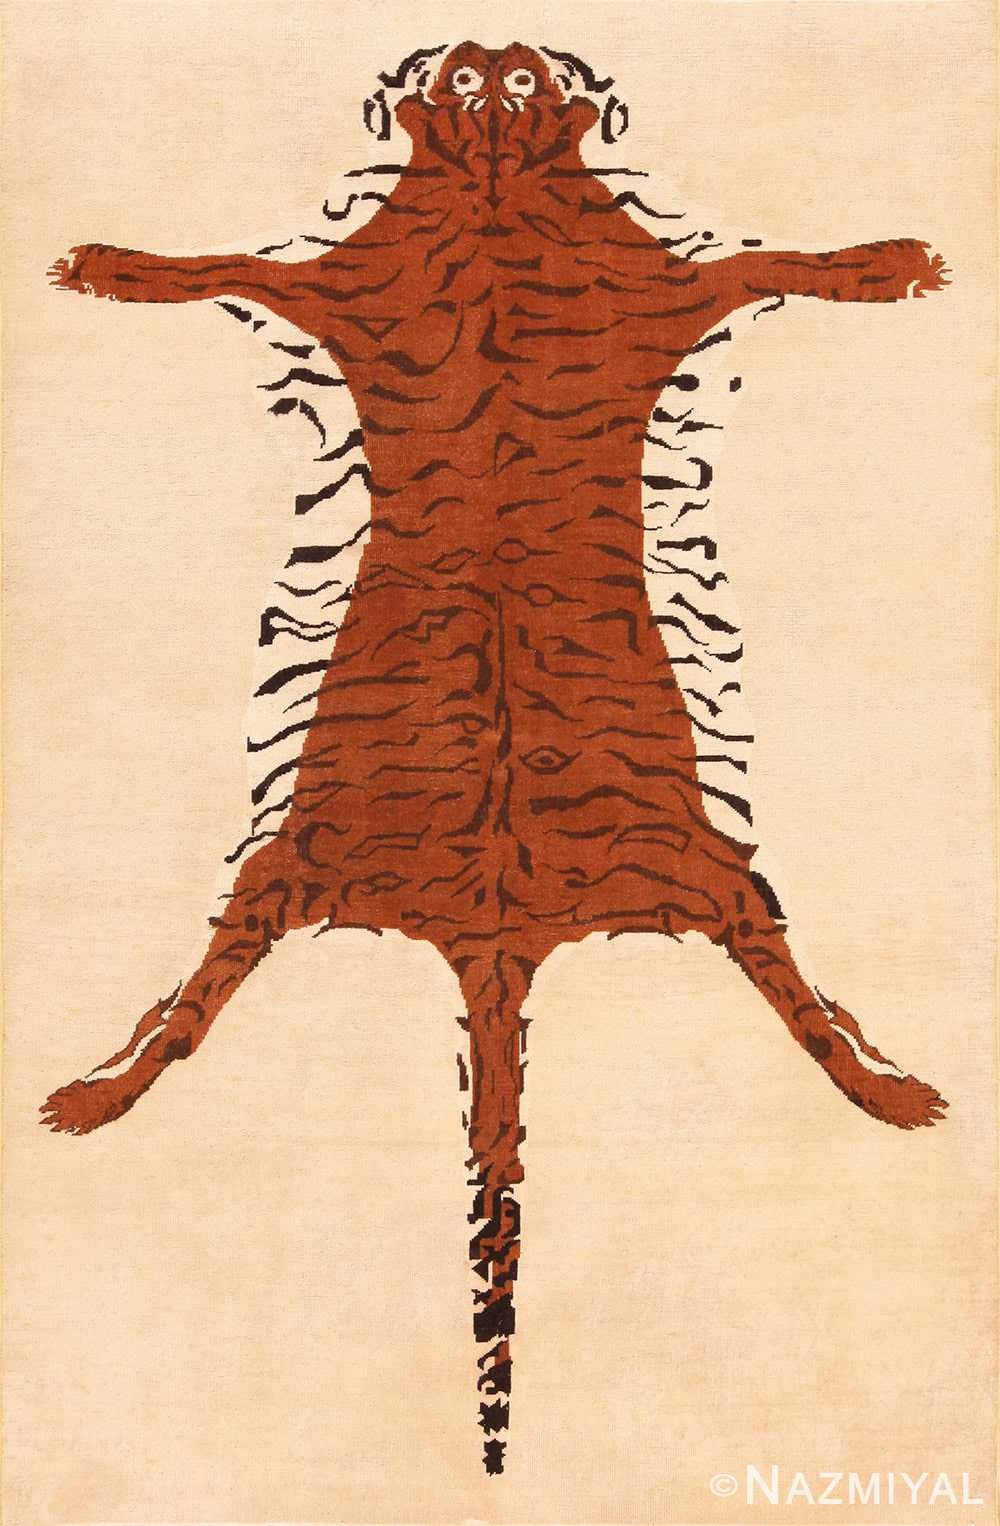 Full Picture of Vintage Indian Tiger Design Rug #70097 from Nazmiyal Antique Rugs in NYC